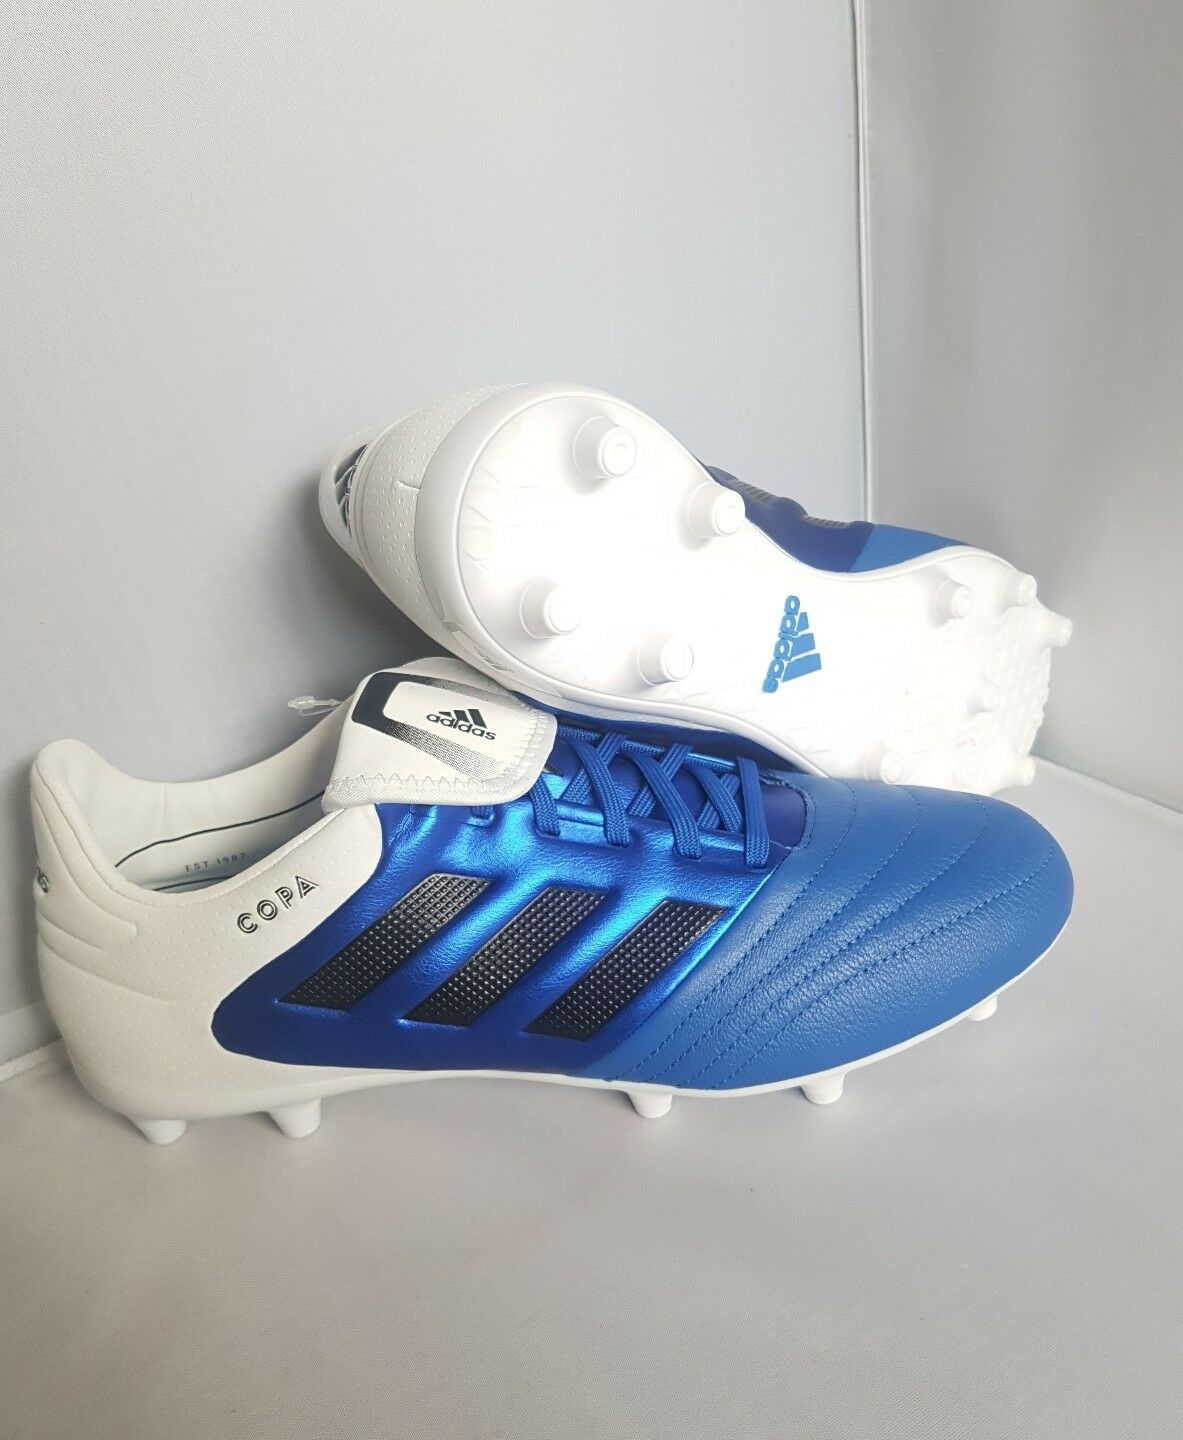 Adidas COPA 17.3 FG 'Touch Of Class' UK 8.5 US 9  Leather Blau Weiß